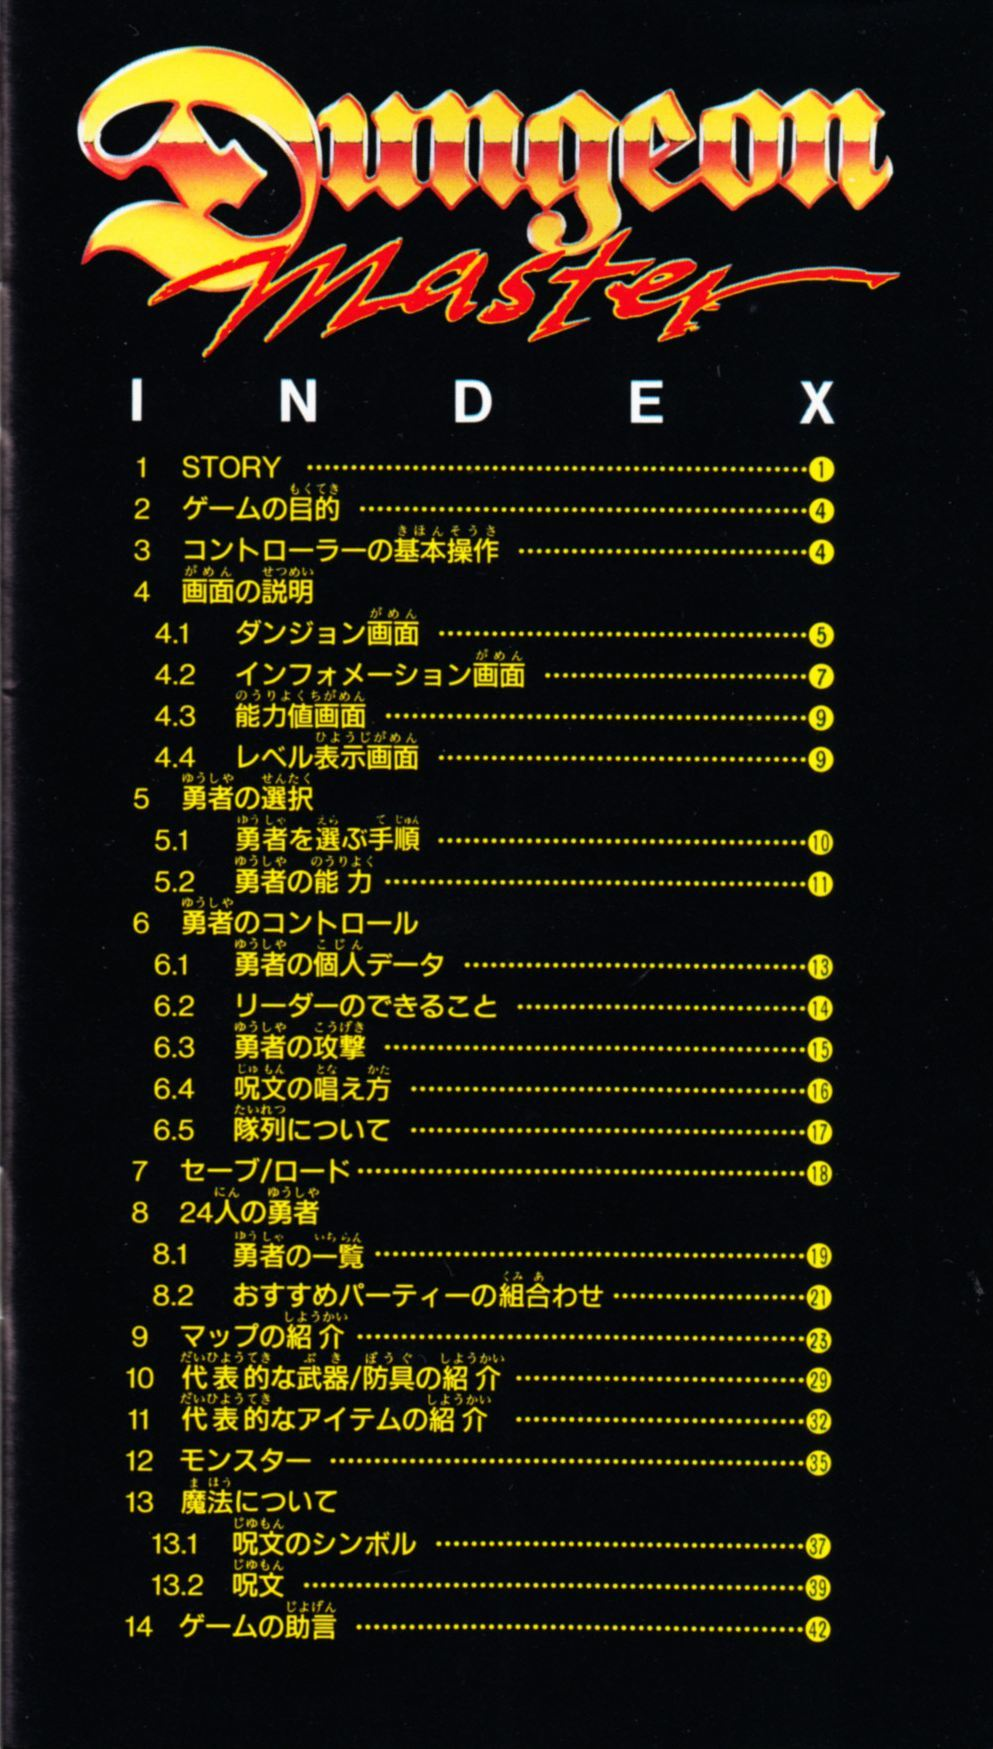 Game - Dungeon Master - JP - Super Famicom - Manual - Page 003 - Scan